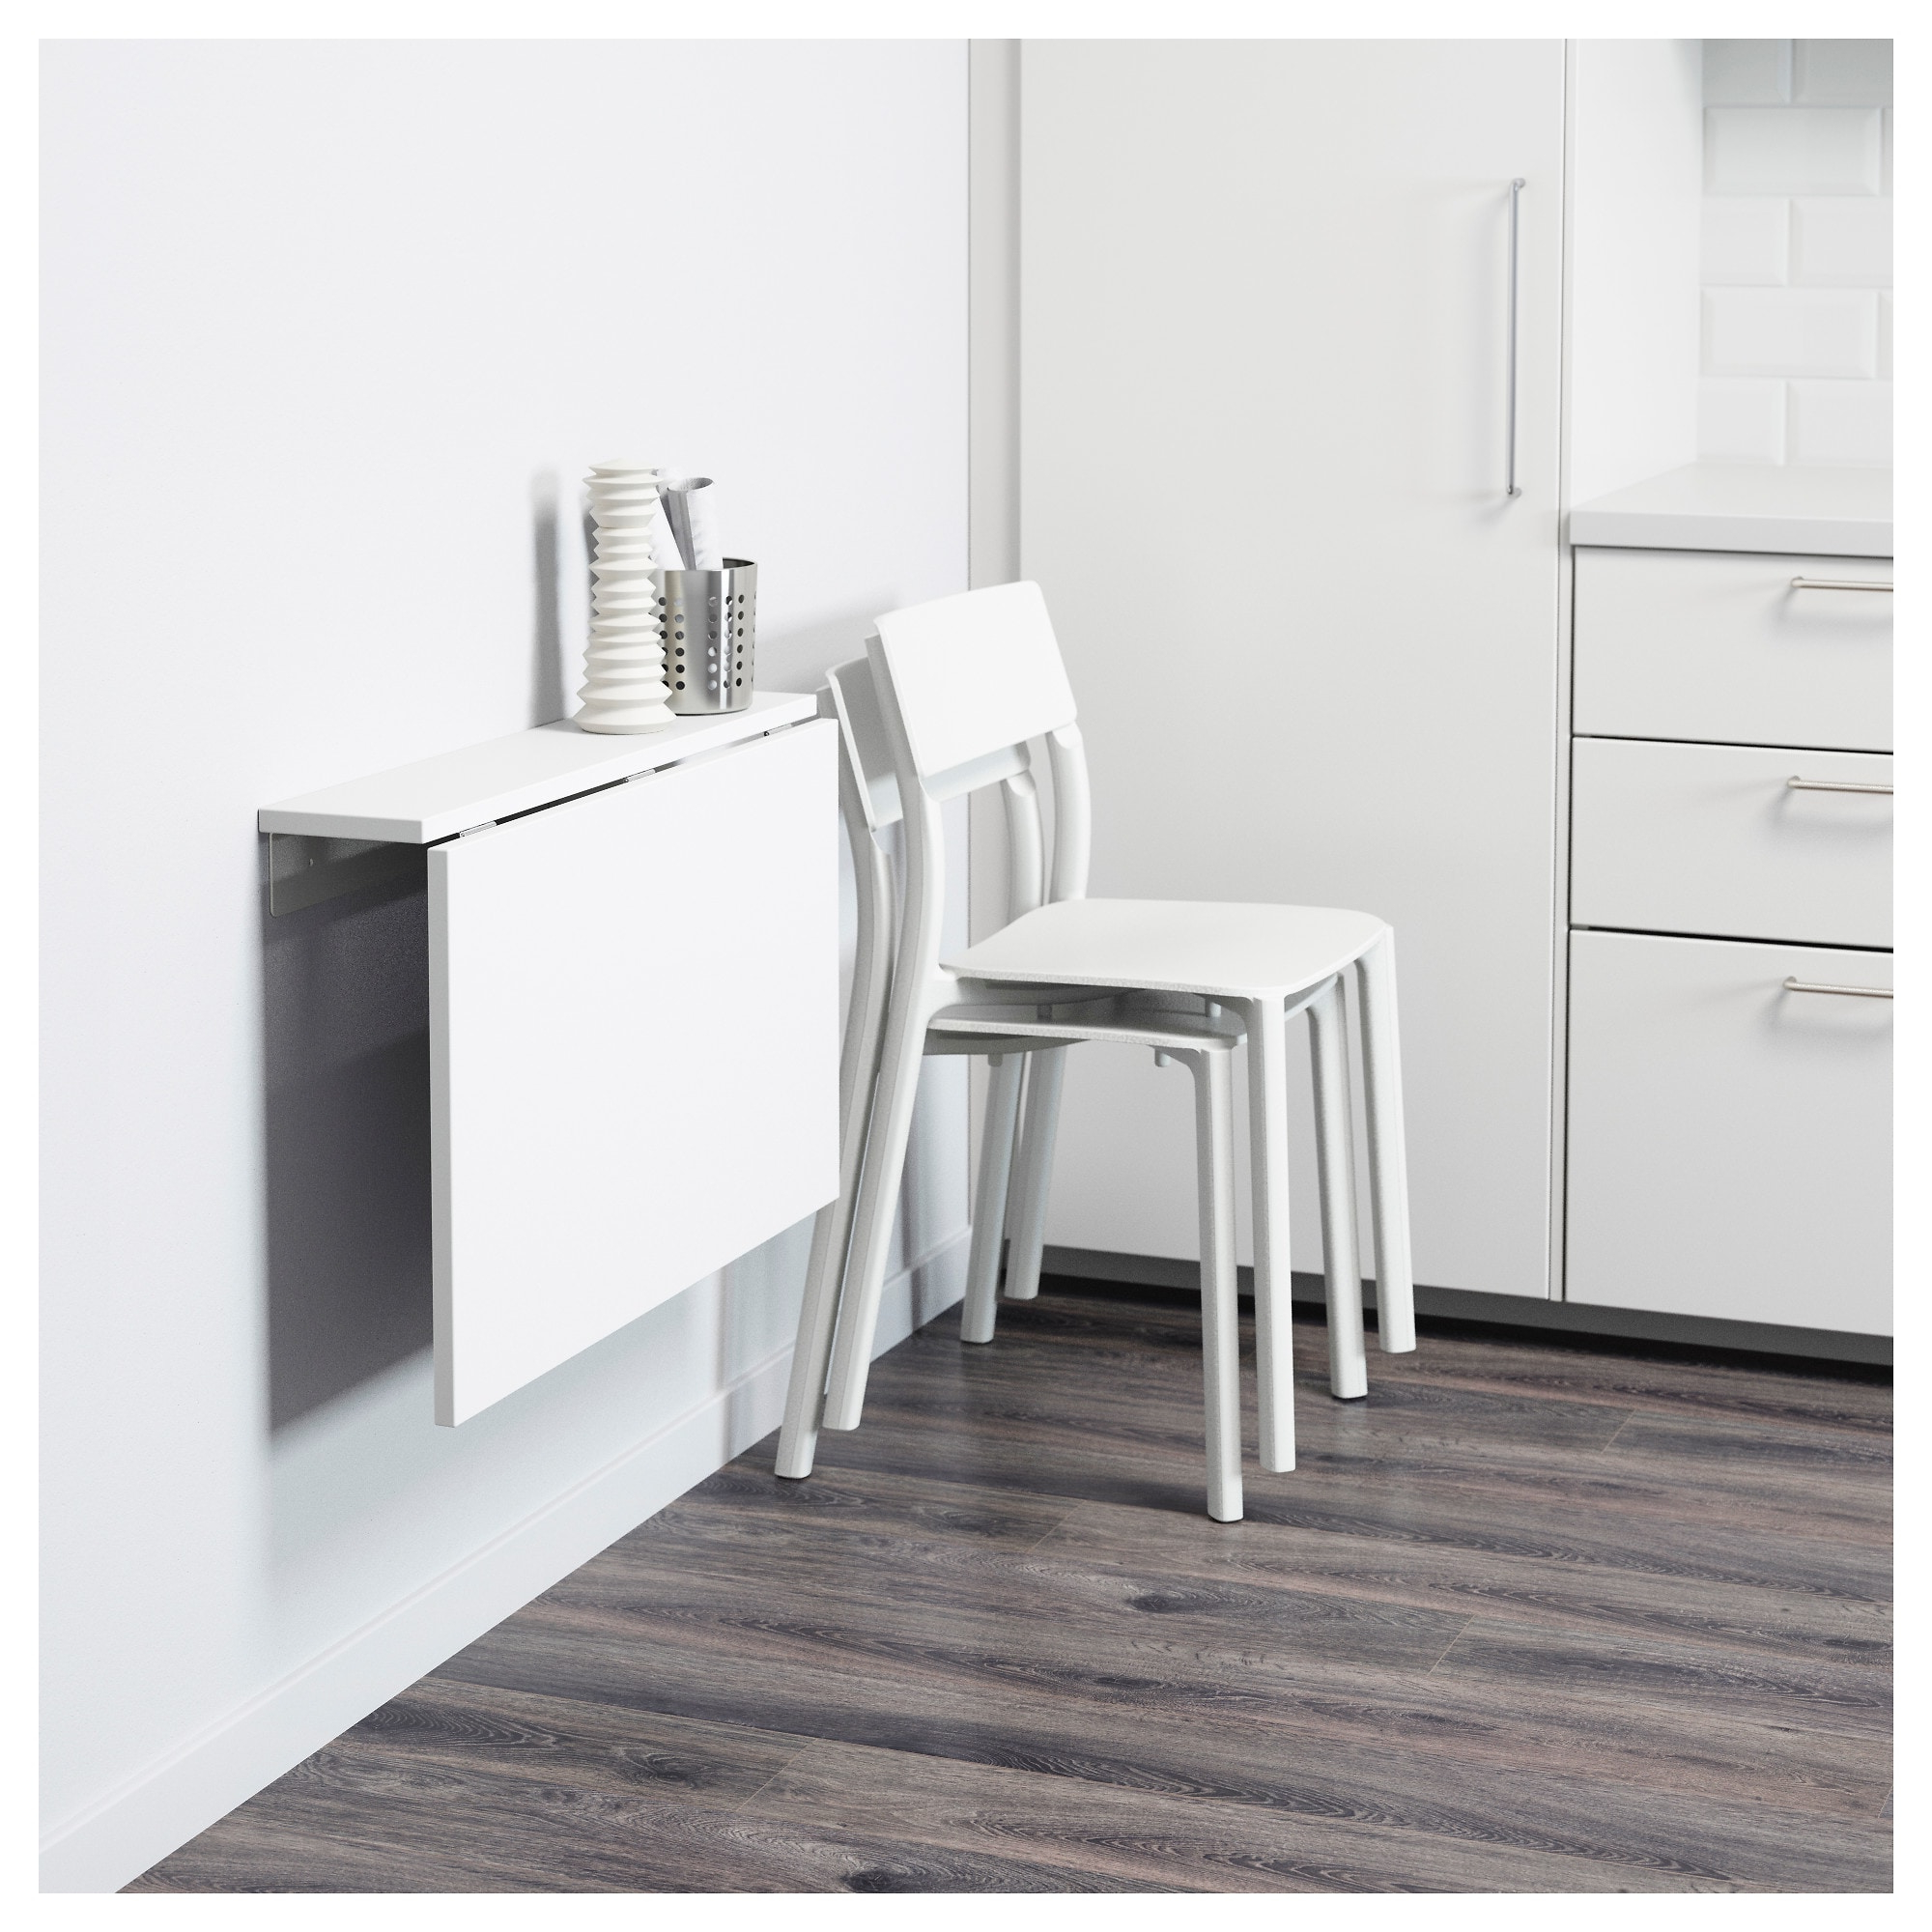 Mesa Plegable Pared Ikea Drdp norberg Mesa Abatible De Pared Blanco 74 X 60 Cm Ikea